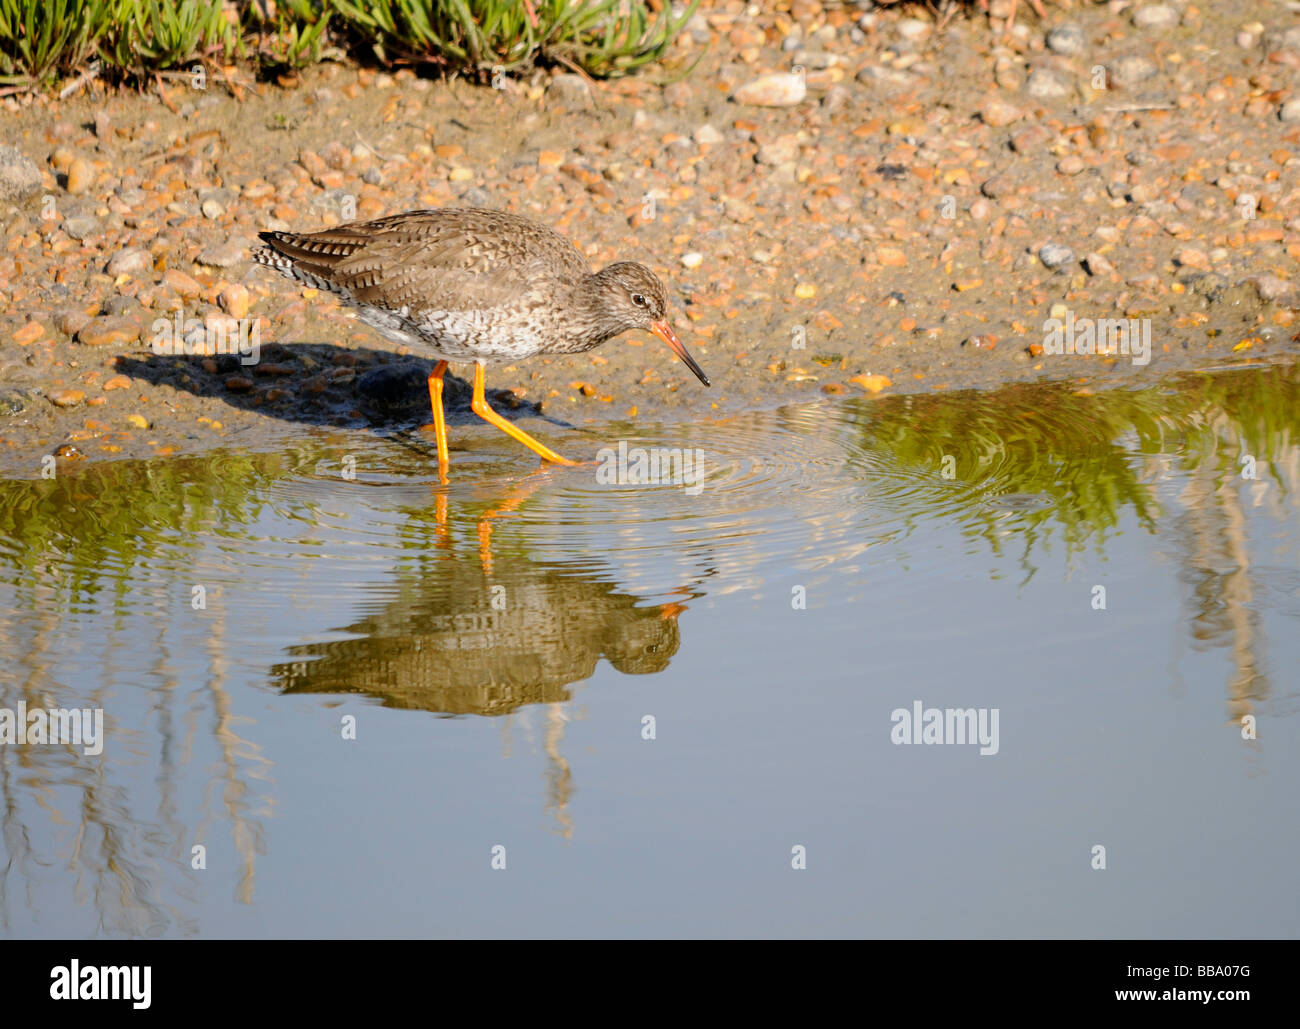 A Redshank (Tringa totanus) searches for invertebrates among the stones on the edge of a shallow lake - Stock Image